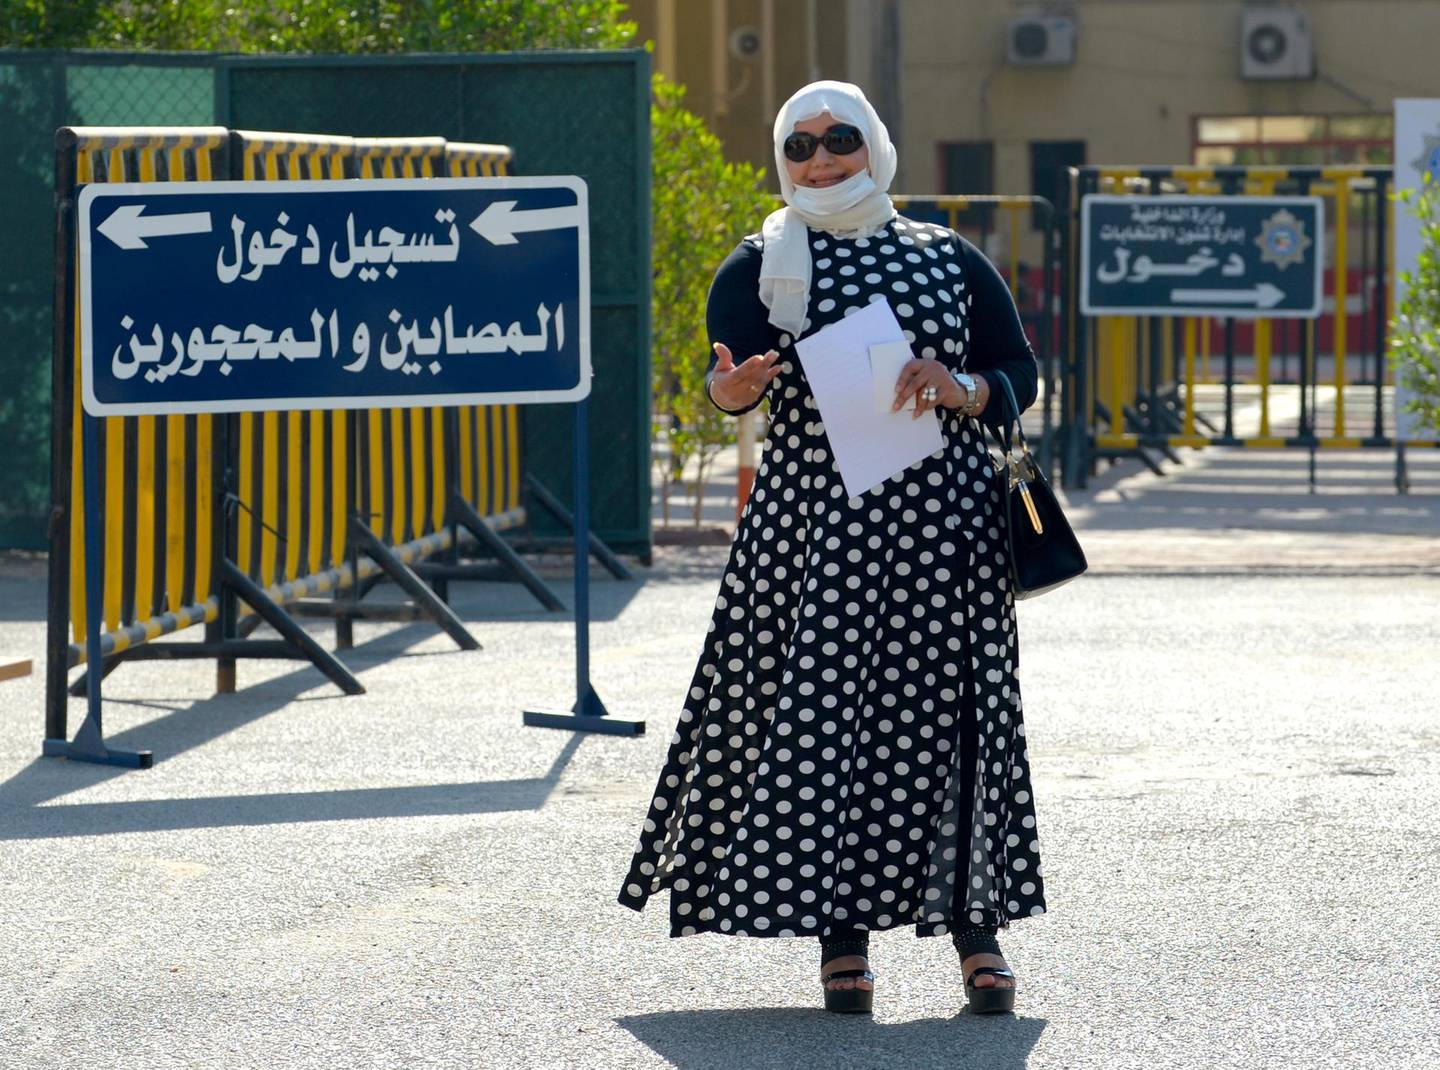 epa08774913 Noura al-Mulaifi, arrives to file candidacy papers for the upcoming parliamentary elections, at elections registration center in Kuwait City, Kuwait, 26 October 2020. Parliamentary elections in Kuwait are scheduled for 05 December.  EPA/NOUFAL IBRAHIM